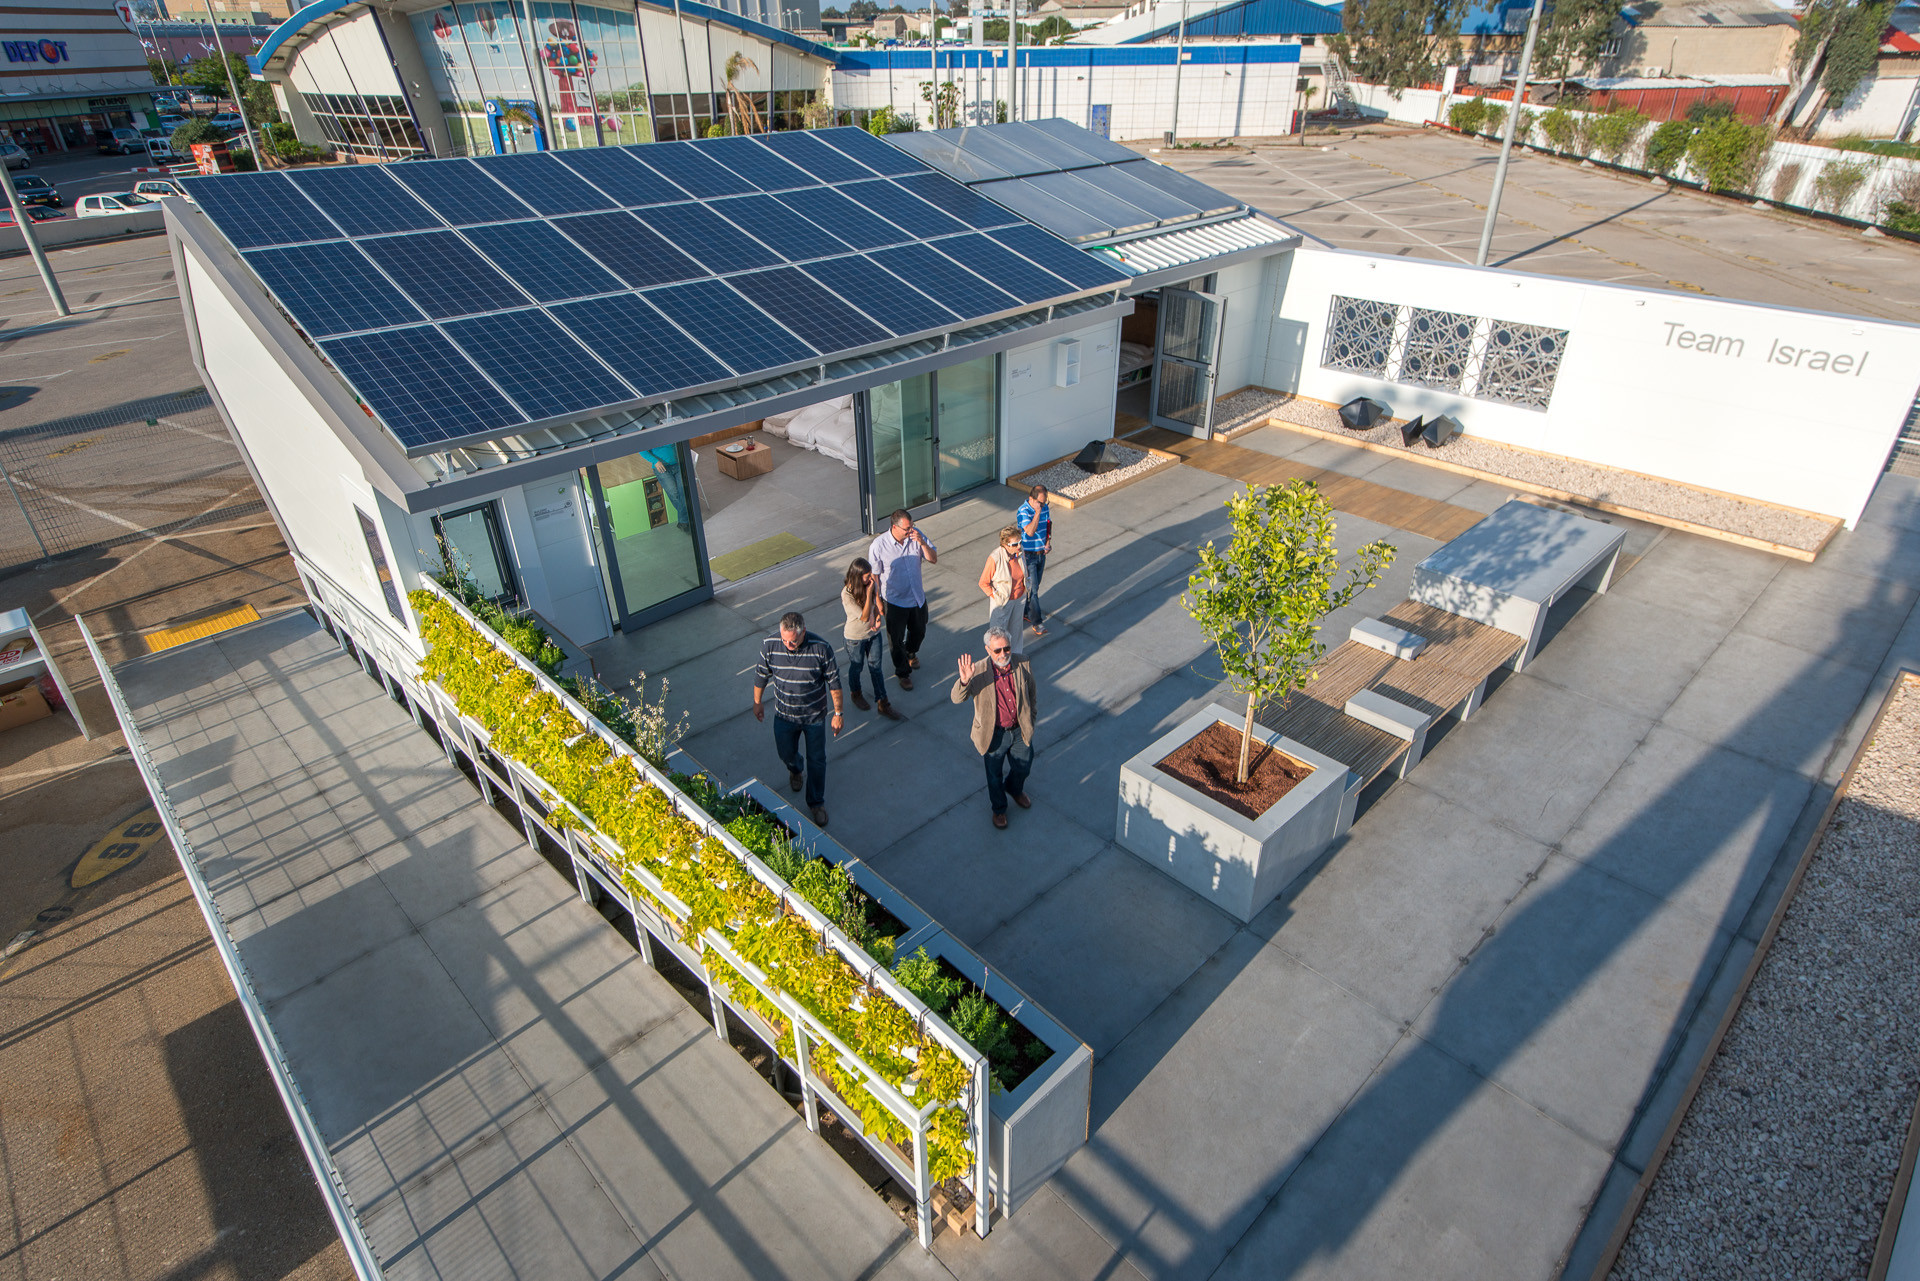 First Israeli Team to Compete in The Solar Decathlon, © Lior Avitan, Courtesy of Solar Decathlon Team Israel